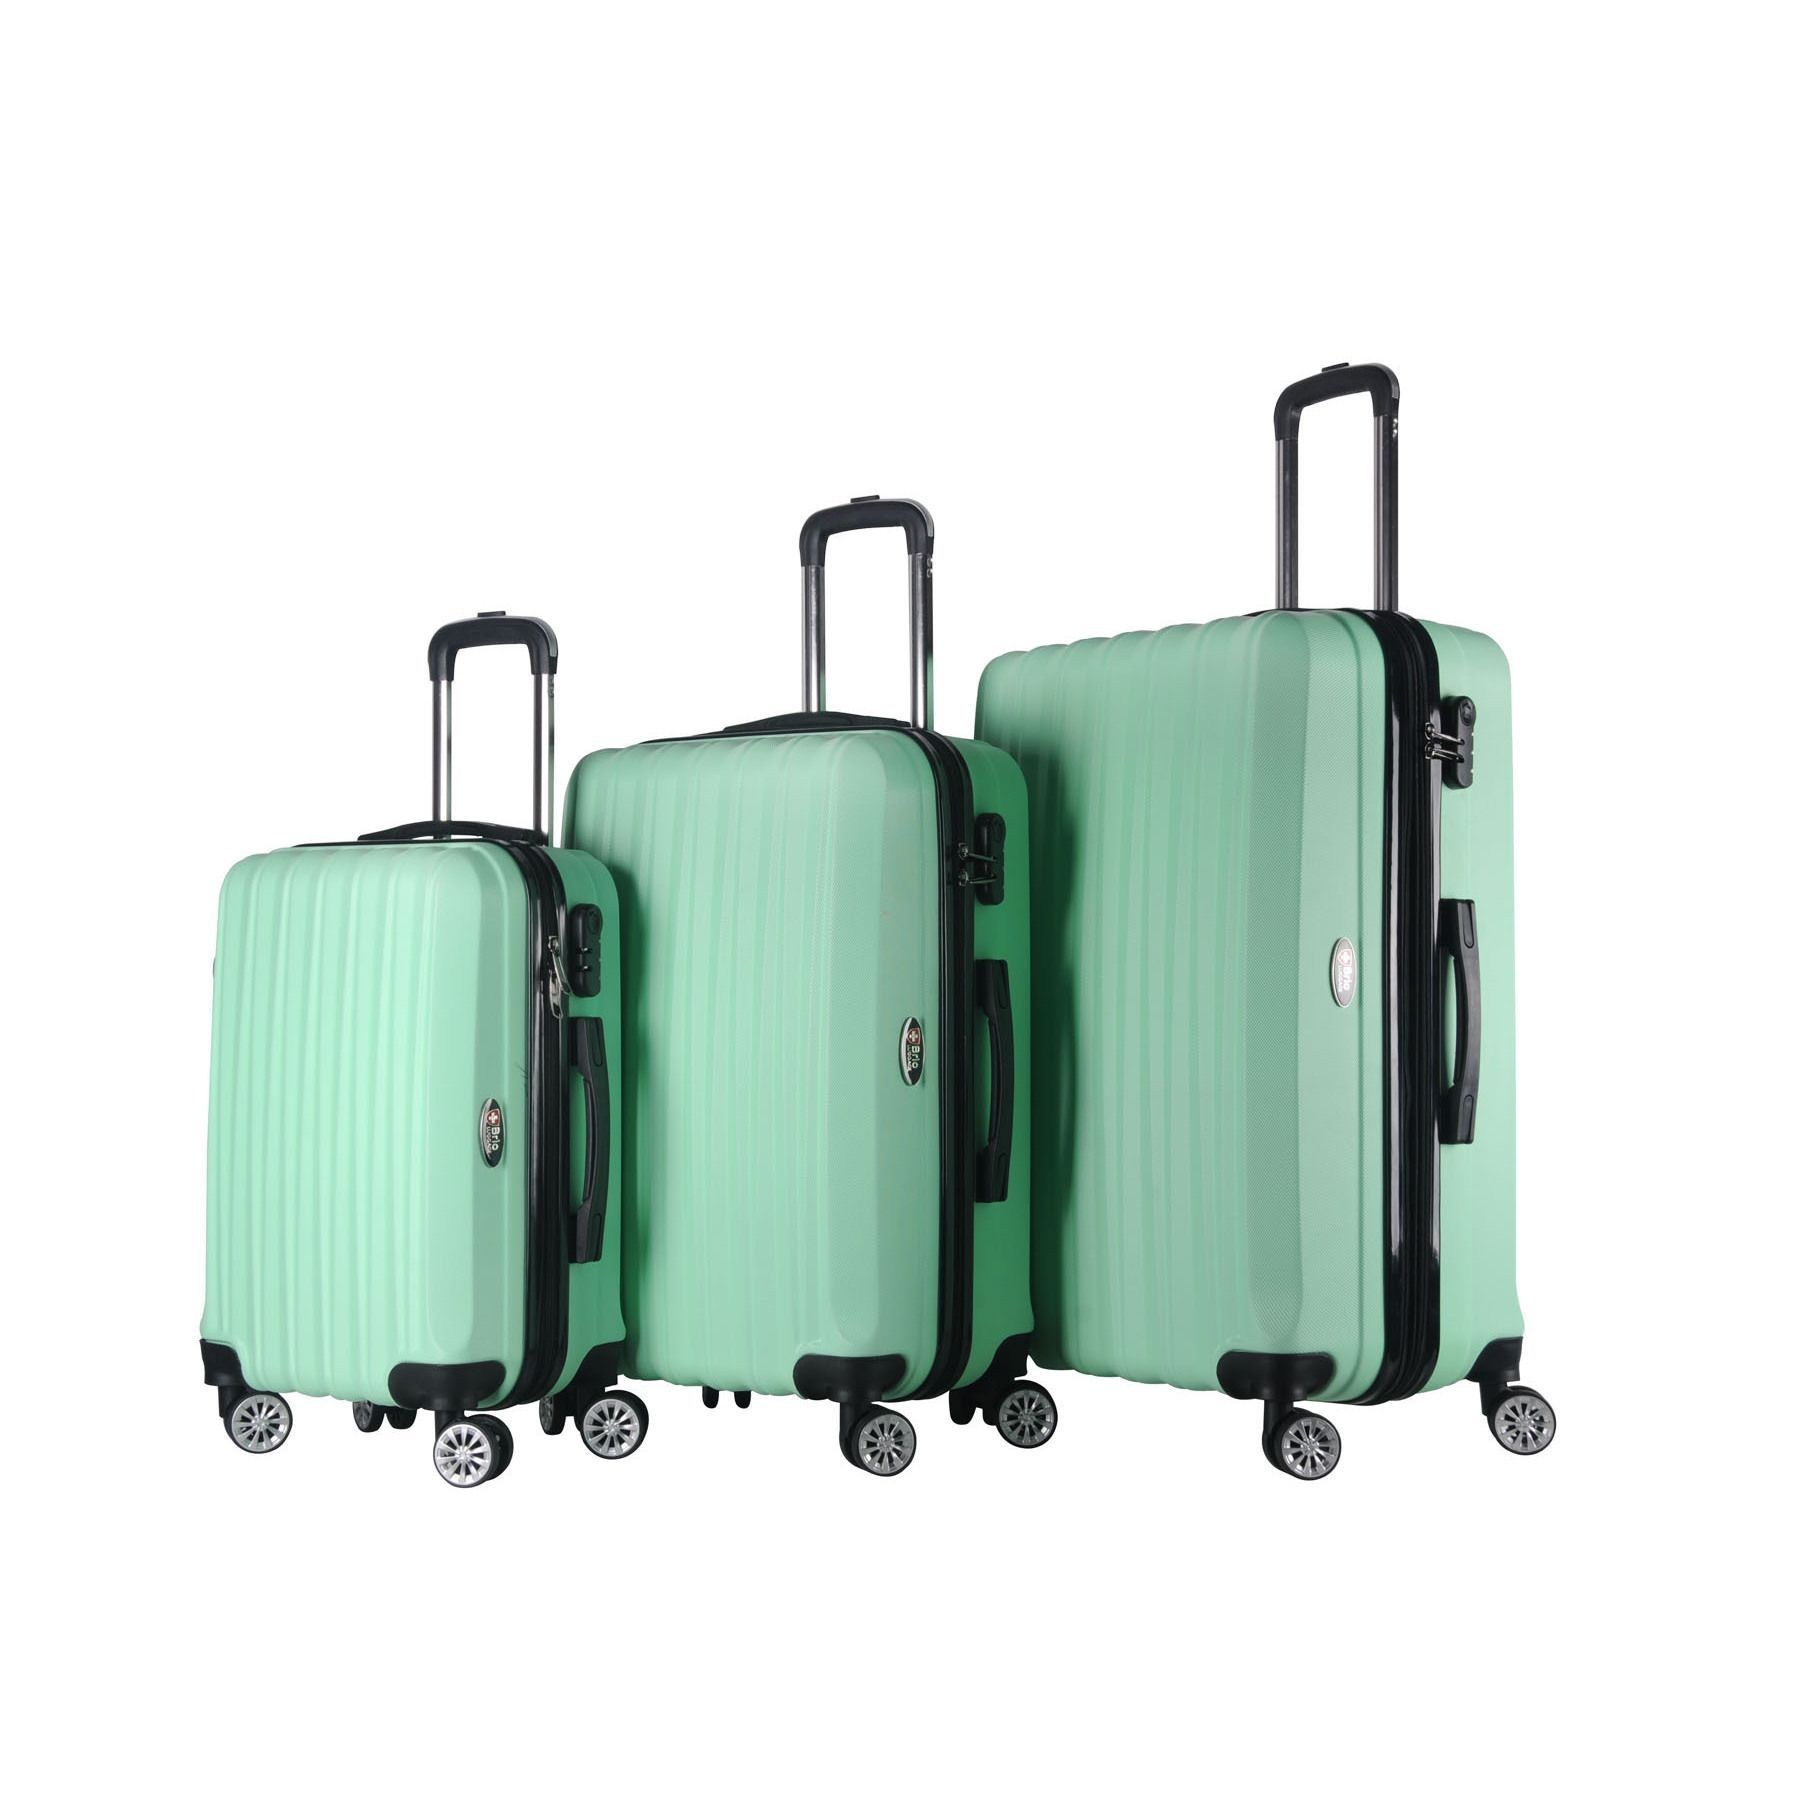 Brio Luggage 3-piece Hardside Spinner Luggage Set (Navy ...